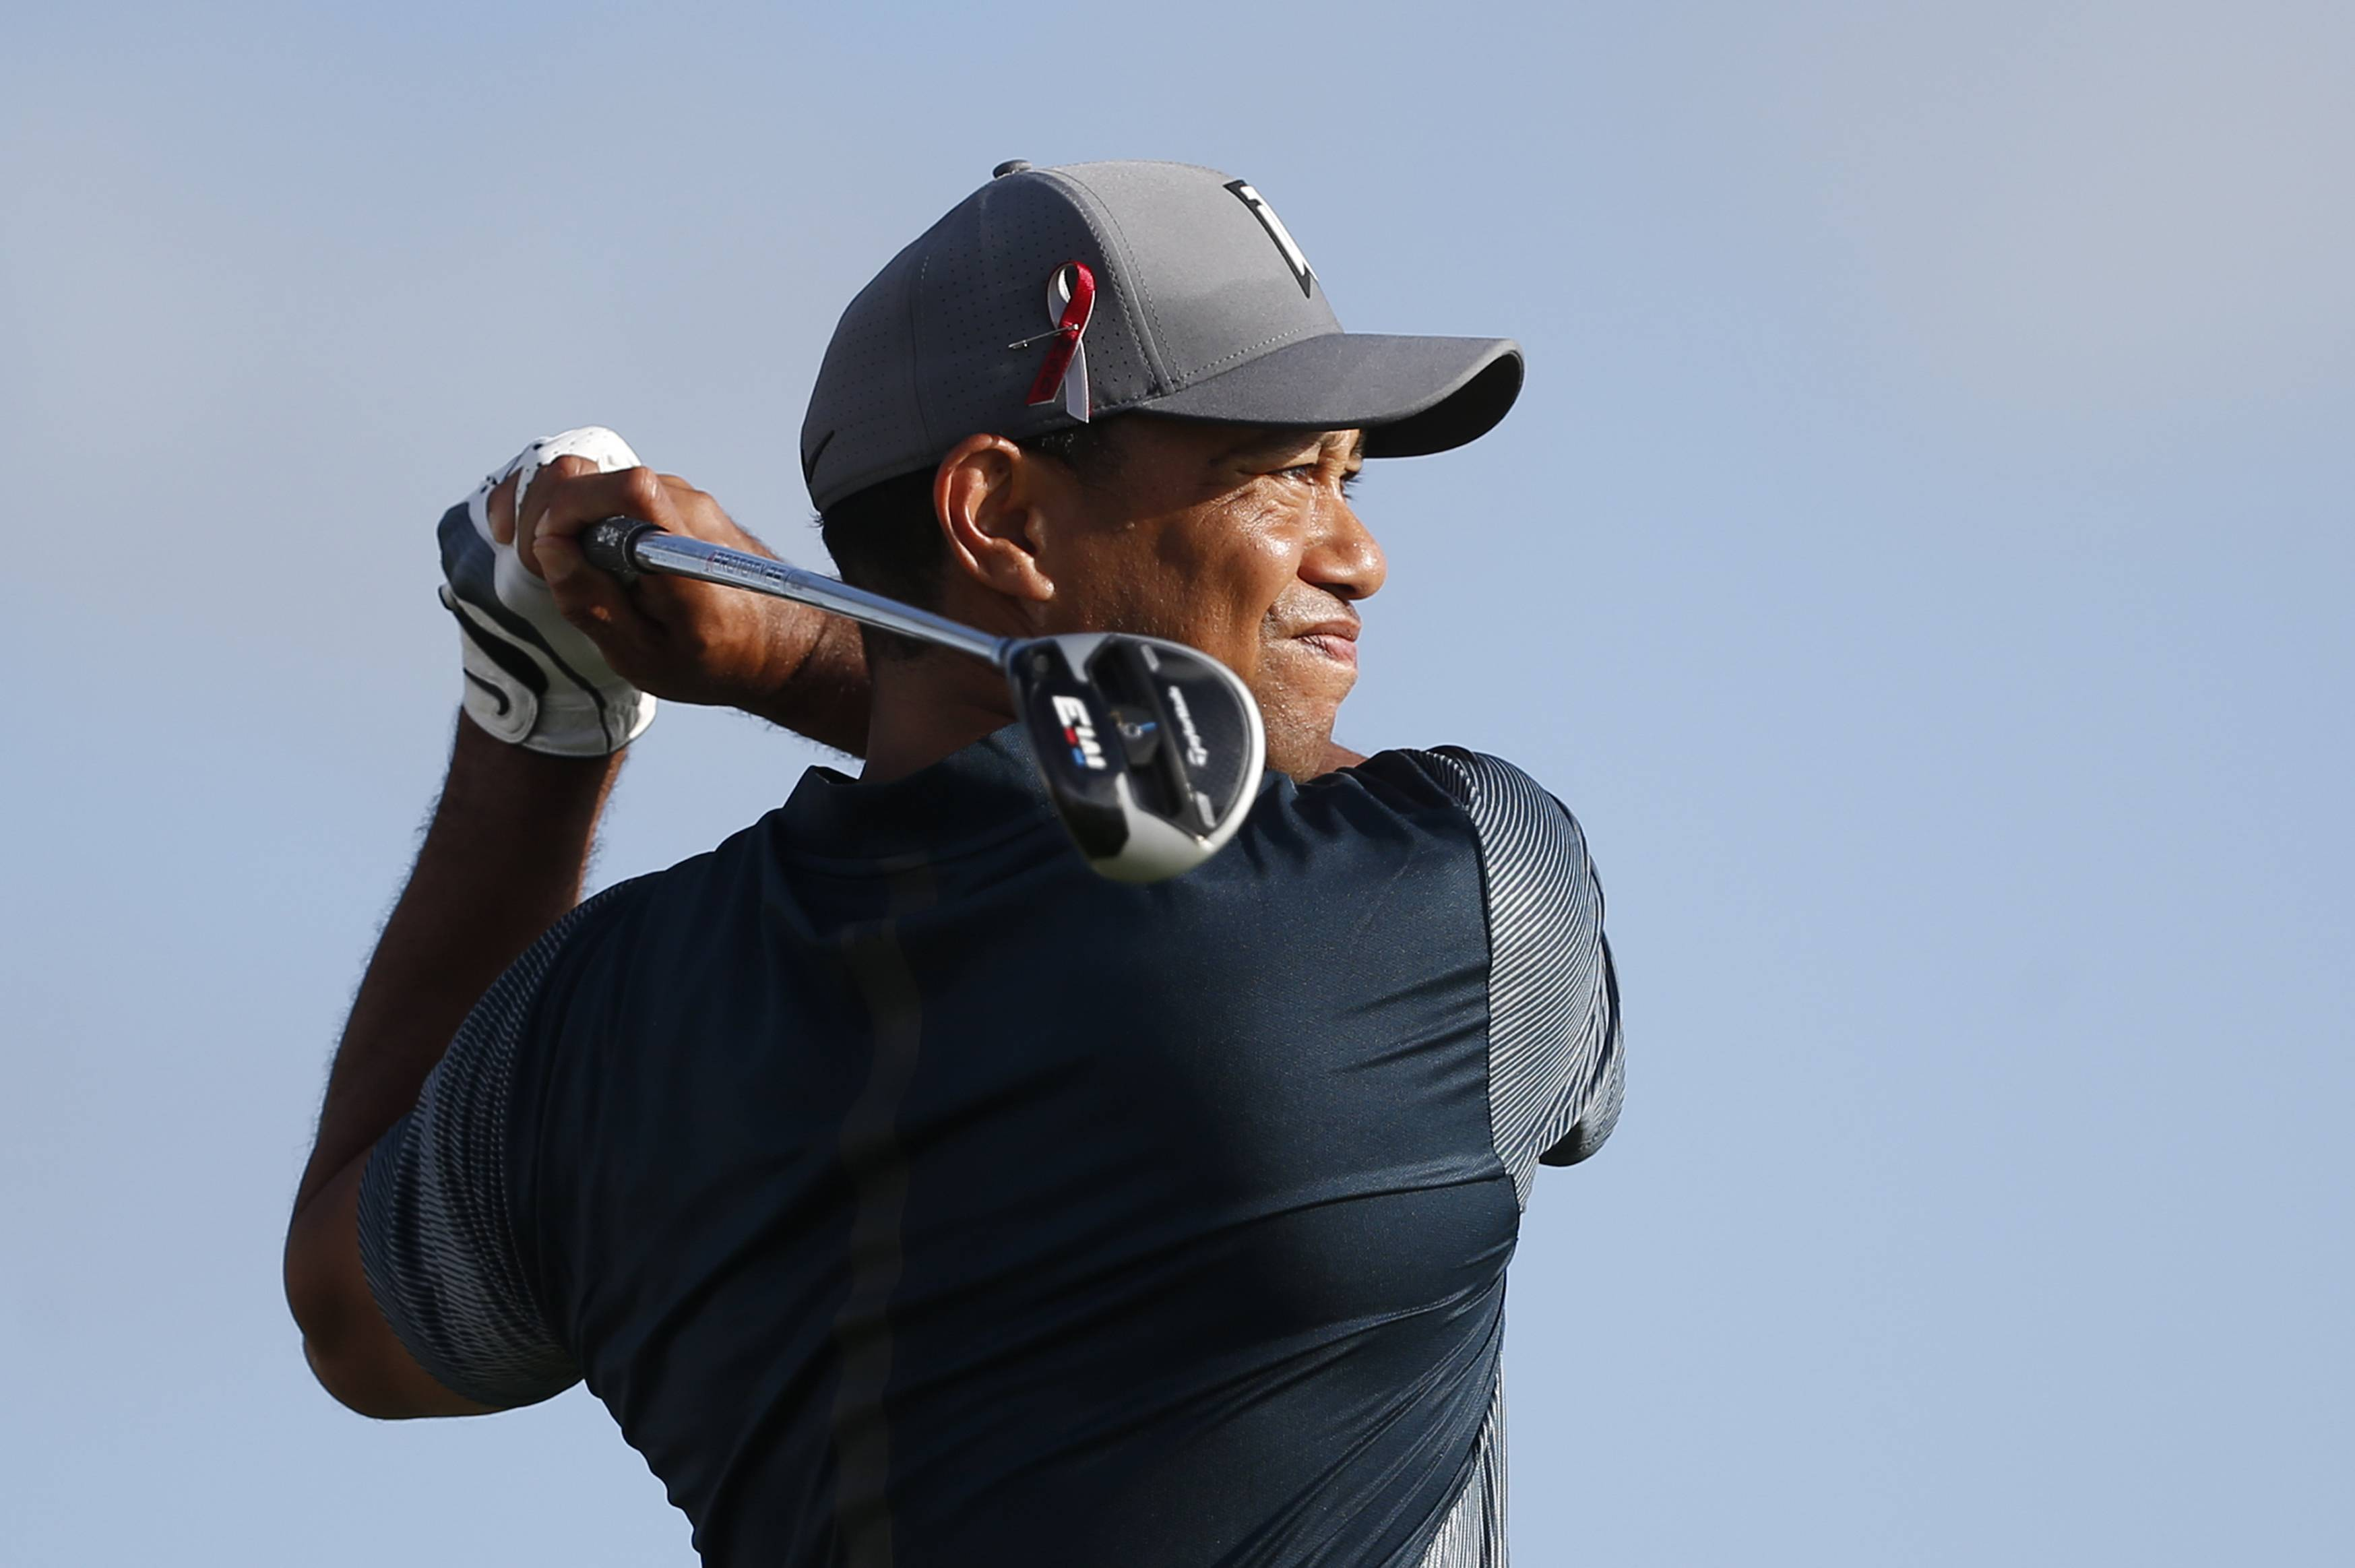 Tiger Woods tees off on the 13th tee during the first round of the Honda Classic golf tournament on Thursday in Palm Beach Gardens, Fla. Golfers wore a ribbon on their caps in memory of the students and faculty killed in the Marjory Stoneman Douglas High School shooting.